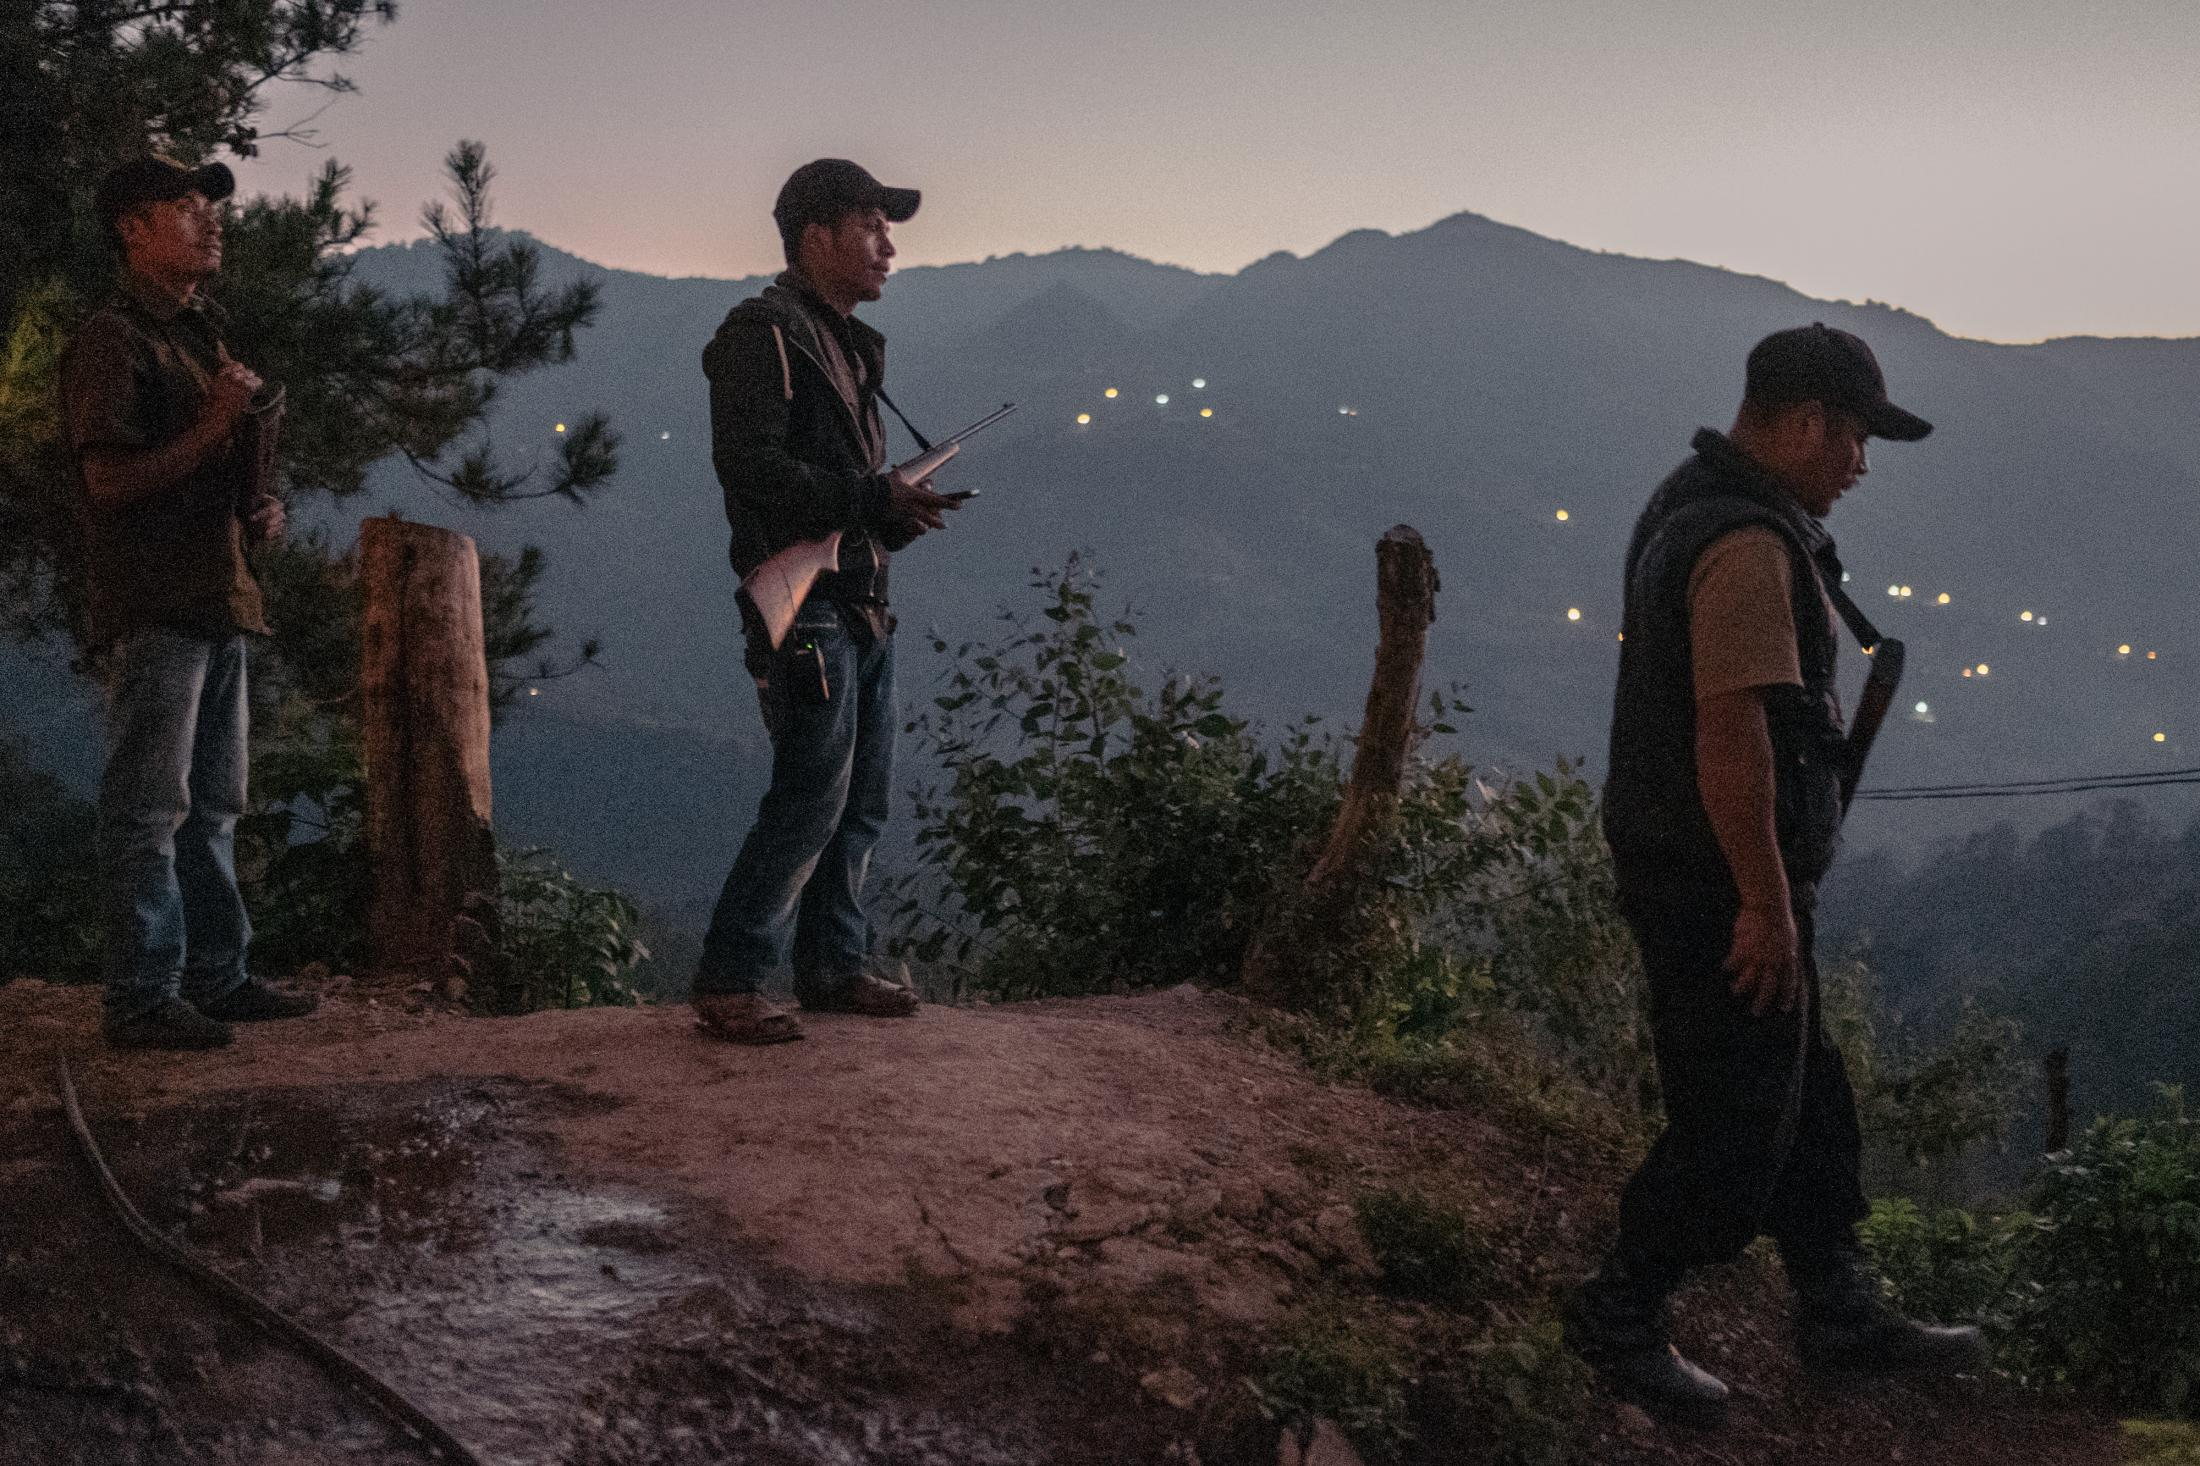 In the poppy-growing village, community police are monitoring and securing the town. The laws of the Mexican government do not apply in this area, as villages live in self-government with a community-based government. 28/11/2019 Laguna Seca, Guerrero, Mexique.